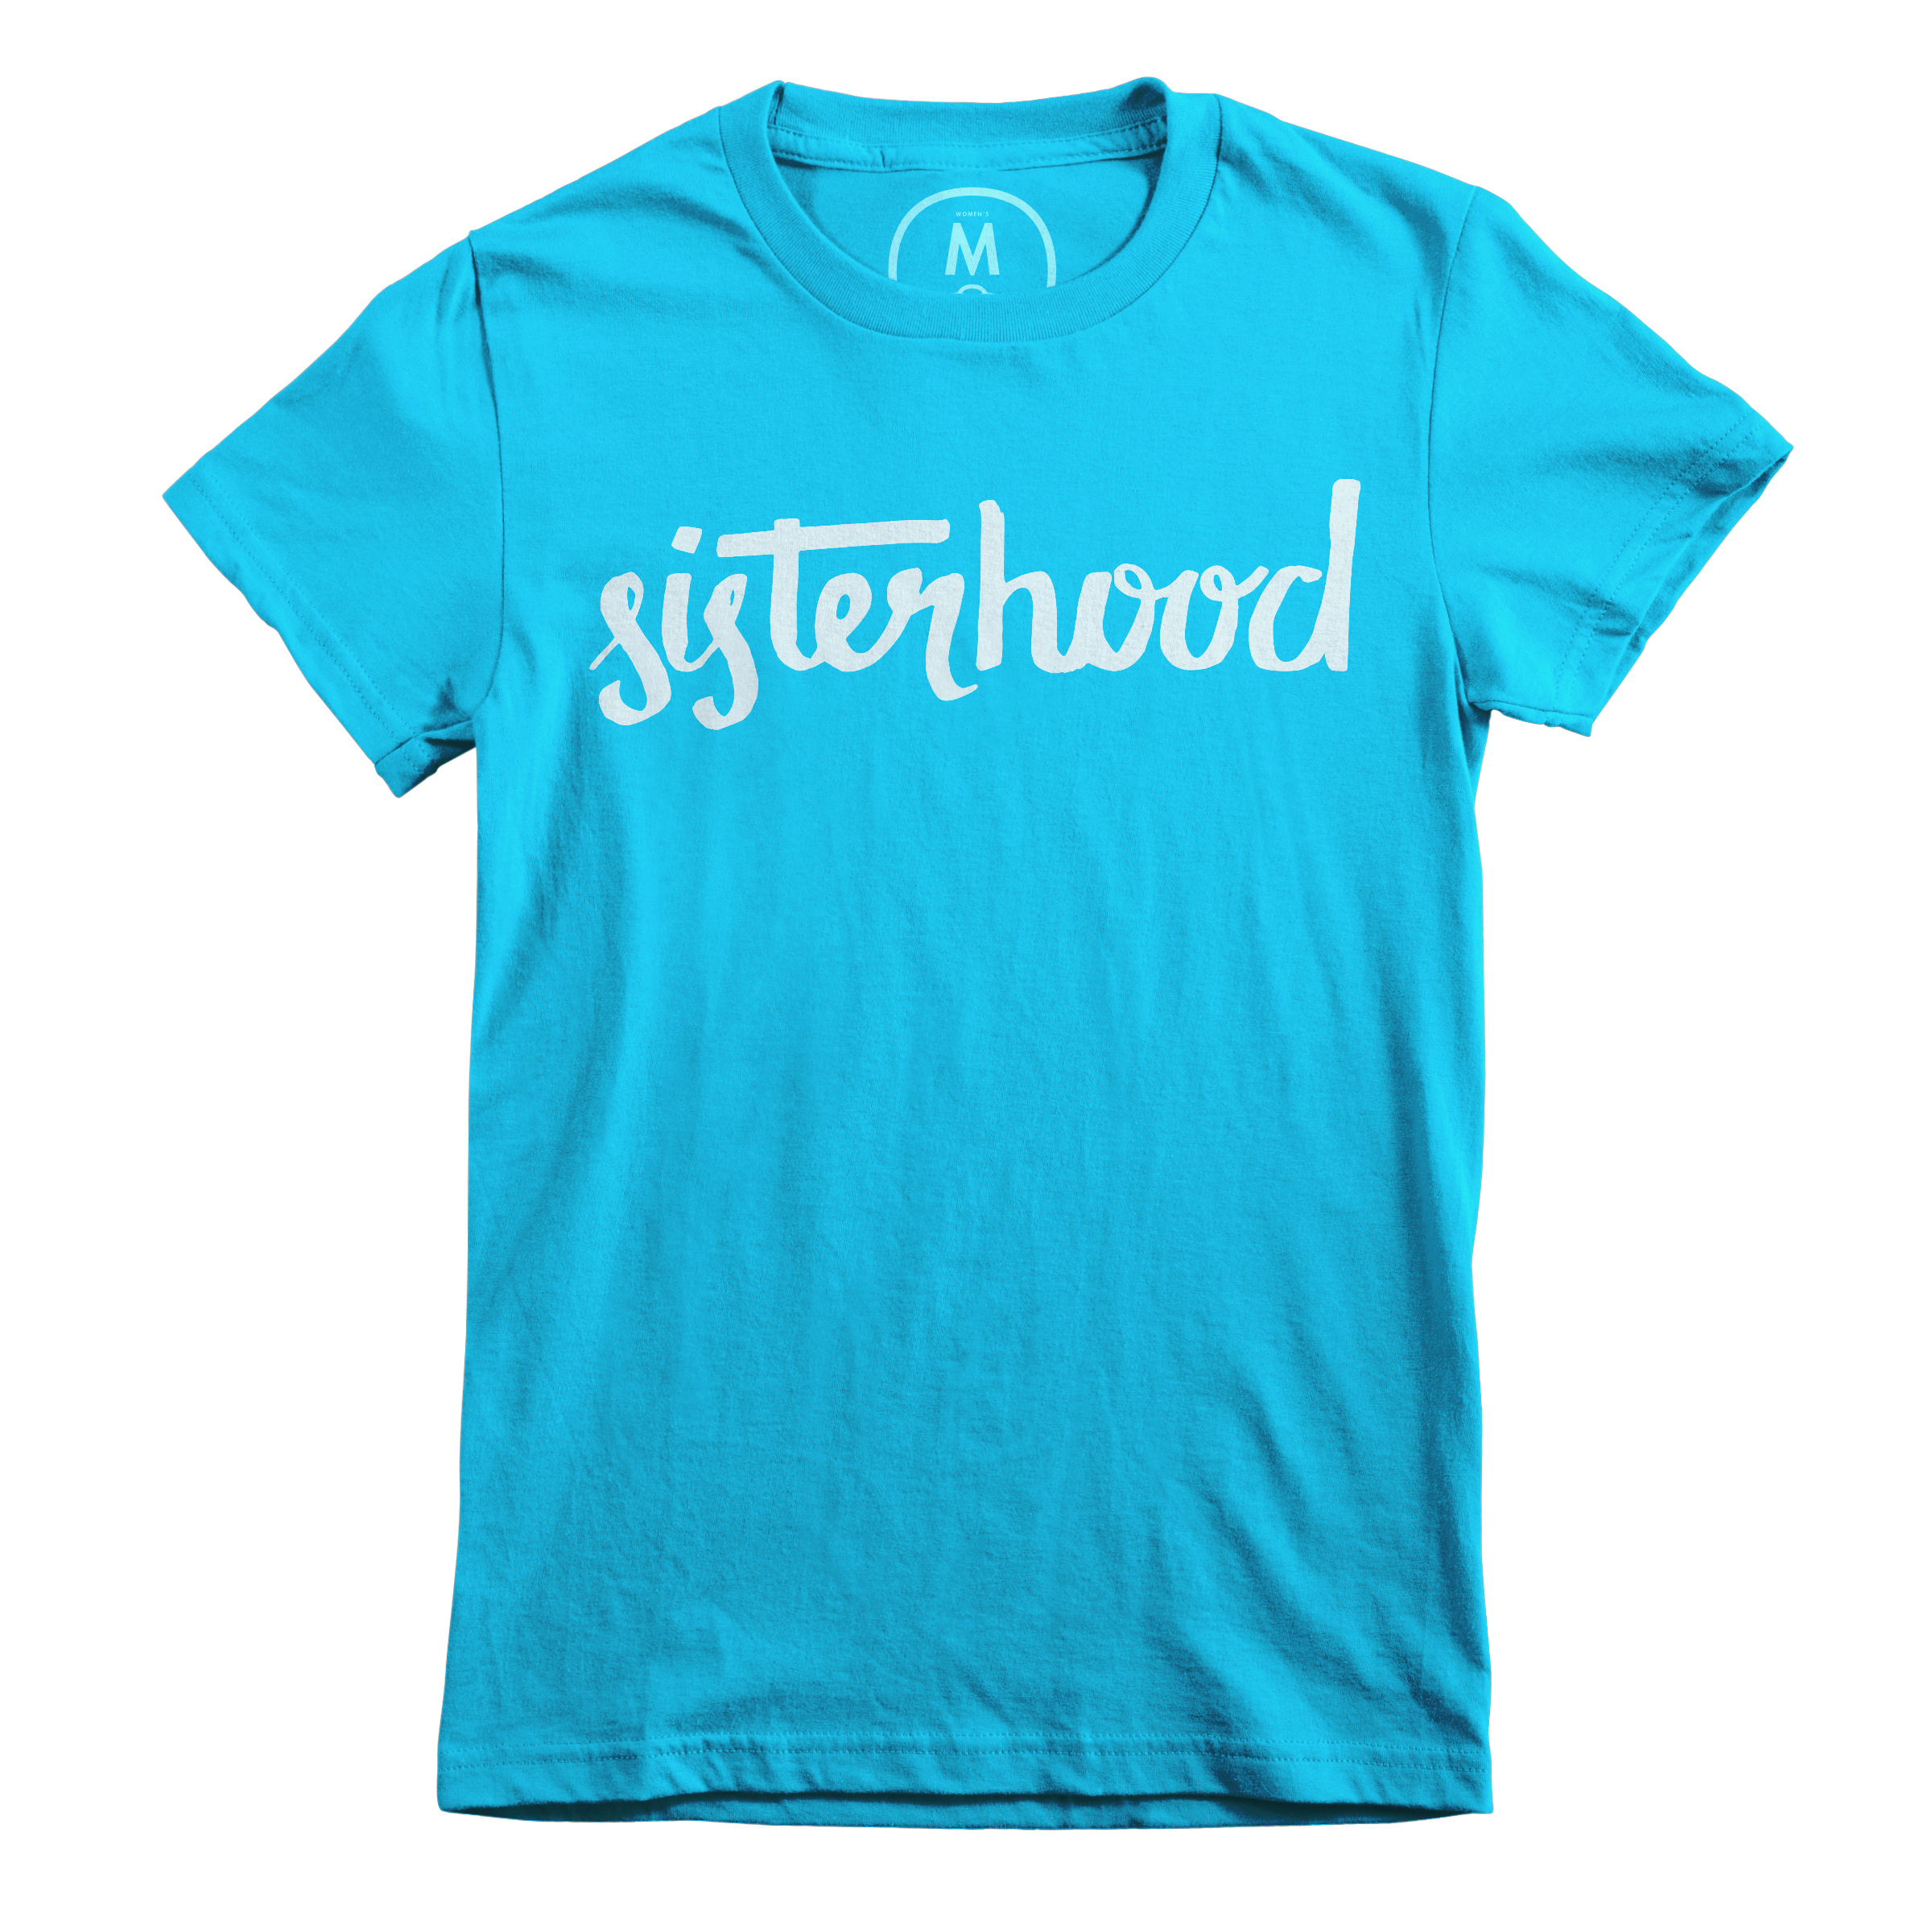 Sisterhood Turquoise (Women's)